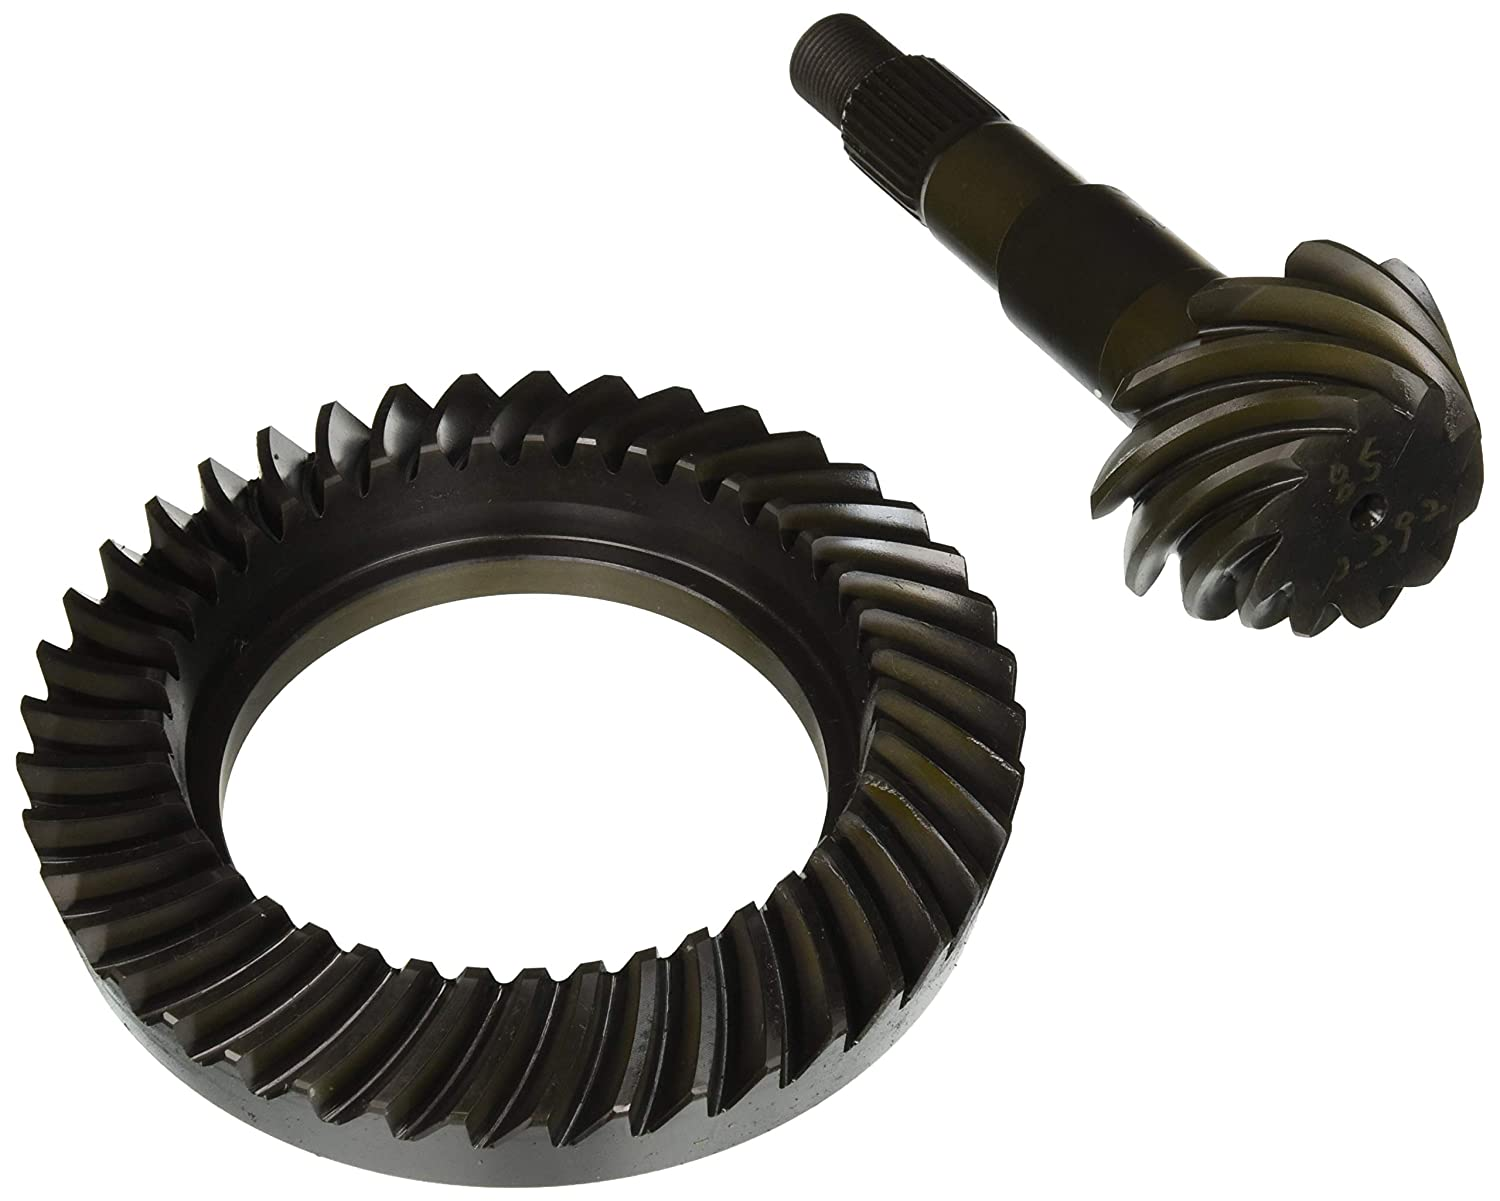 Motive Gear G875410X 7.5' Rear Ring and Pinion for GM (4.10 Ratio)